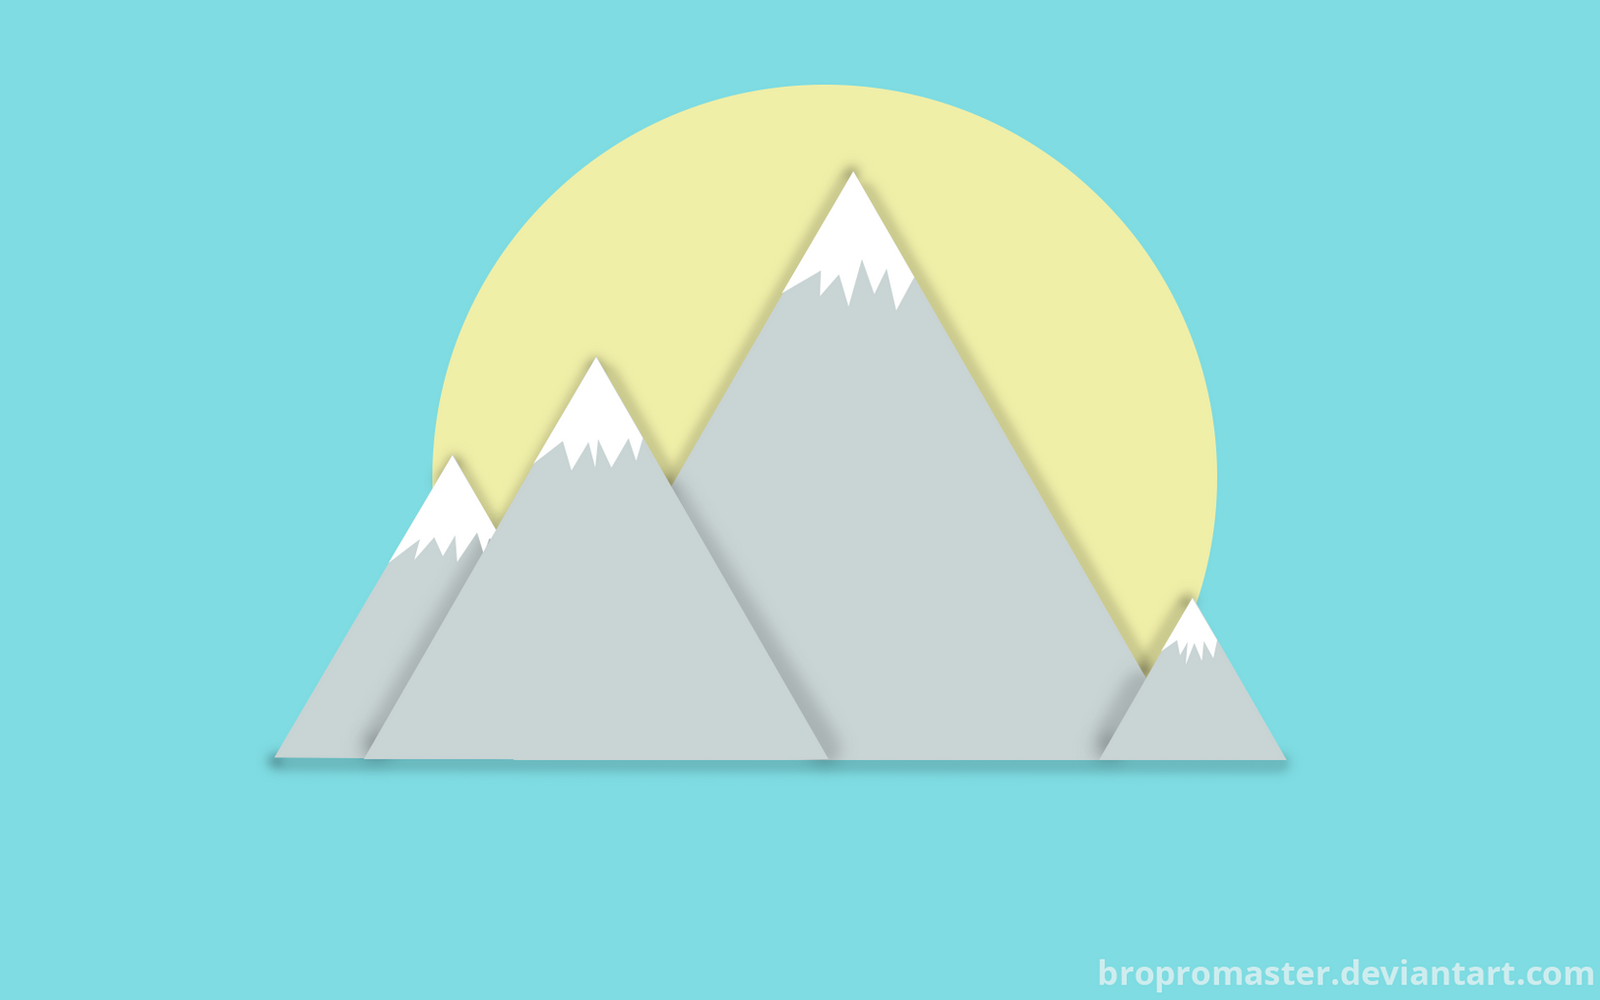 Must see Wallpaper Mountain Simple - simple_mountain_and_sun_wallpaper_by_bropromaster-d8rfzeq  Trends_526183.png